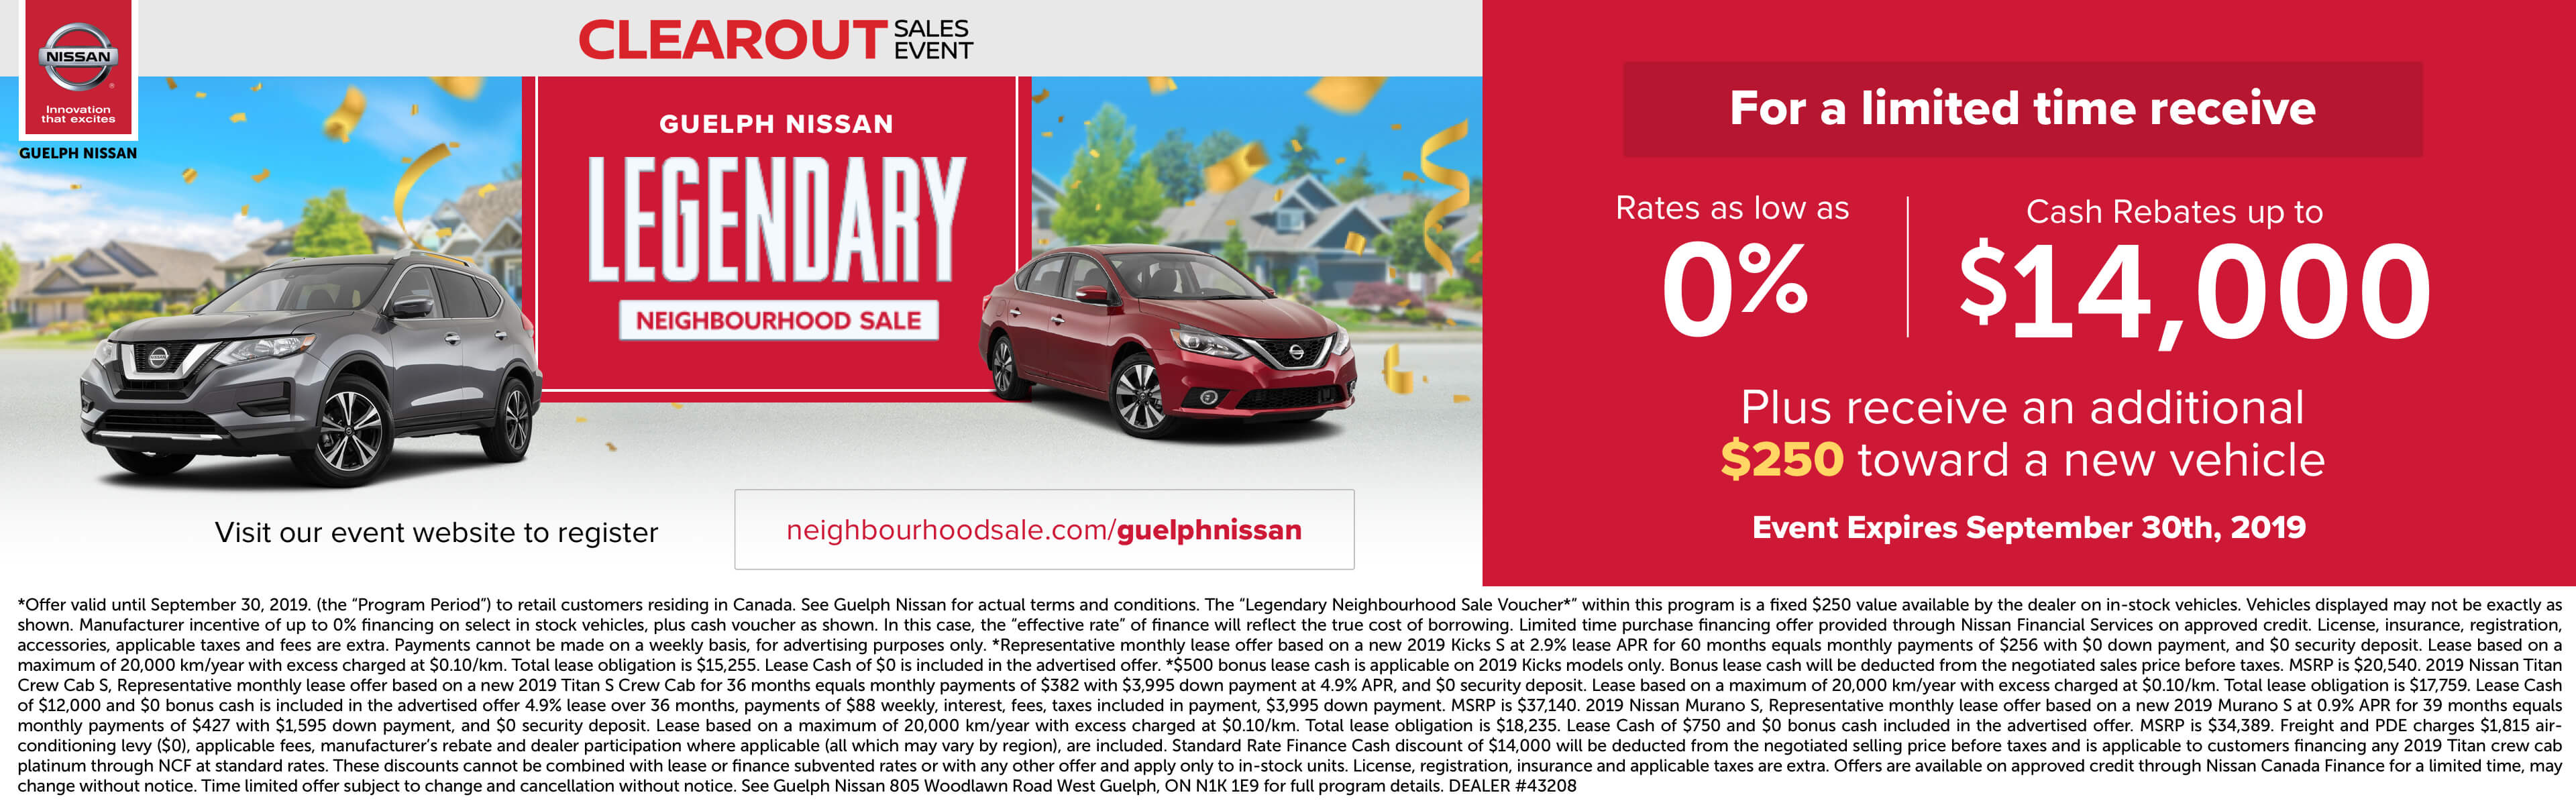 clearout sales event | Guelp Nissan